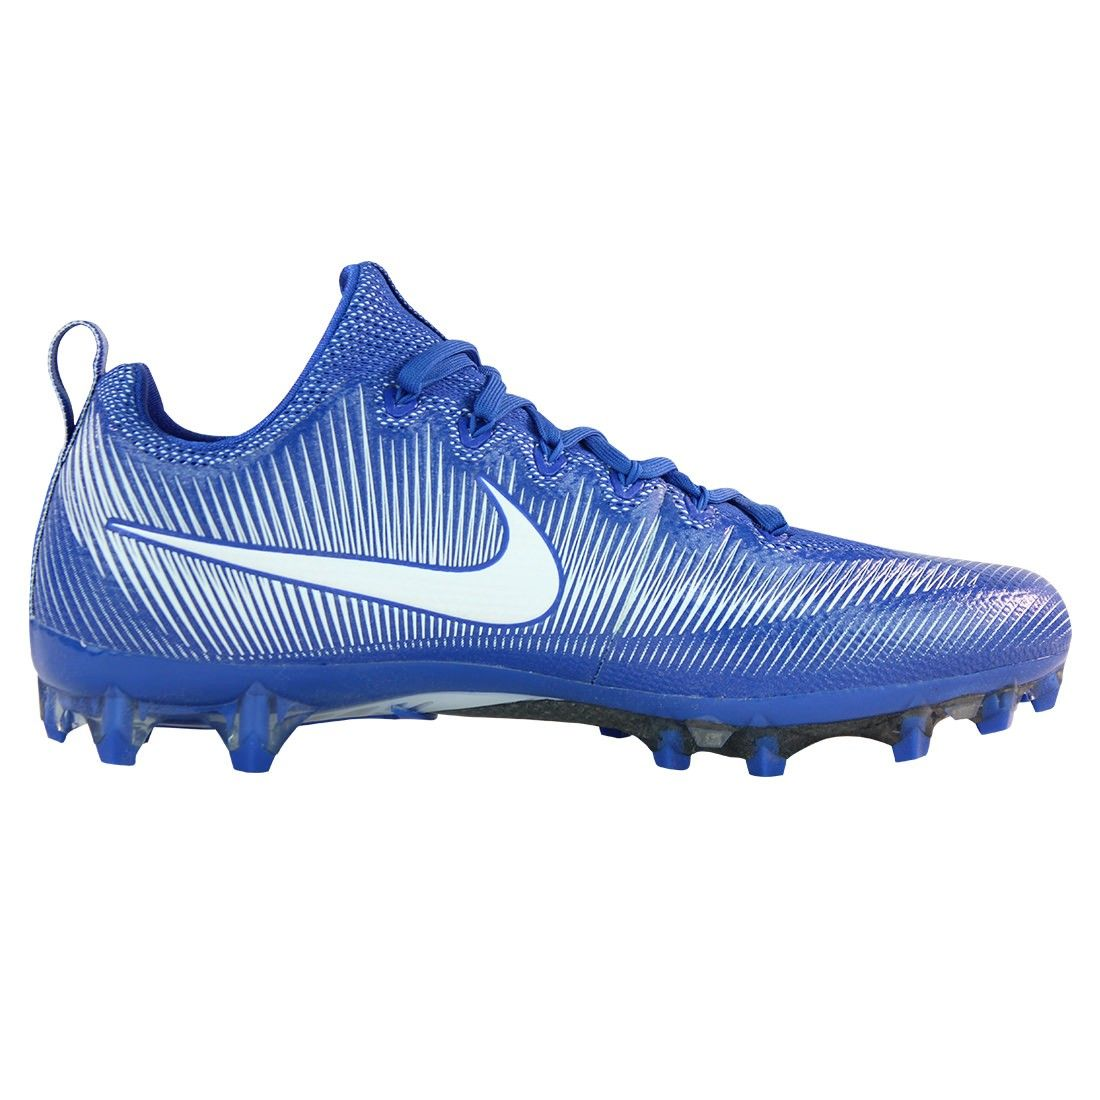 Nike Vapor Untouchable Pro in White/Royal Built for the Most Dynamic  Players on the � Nike VaporCleatsLacrosseCableCleats ShoesCaboFootball ...